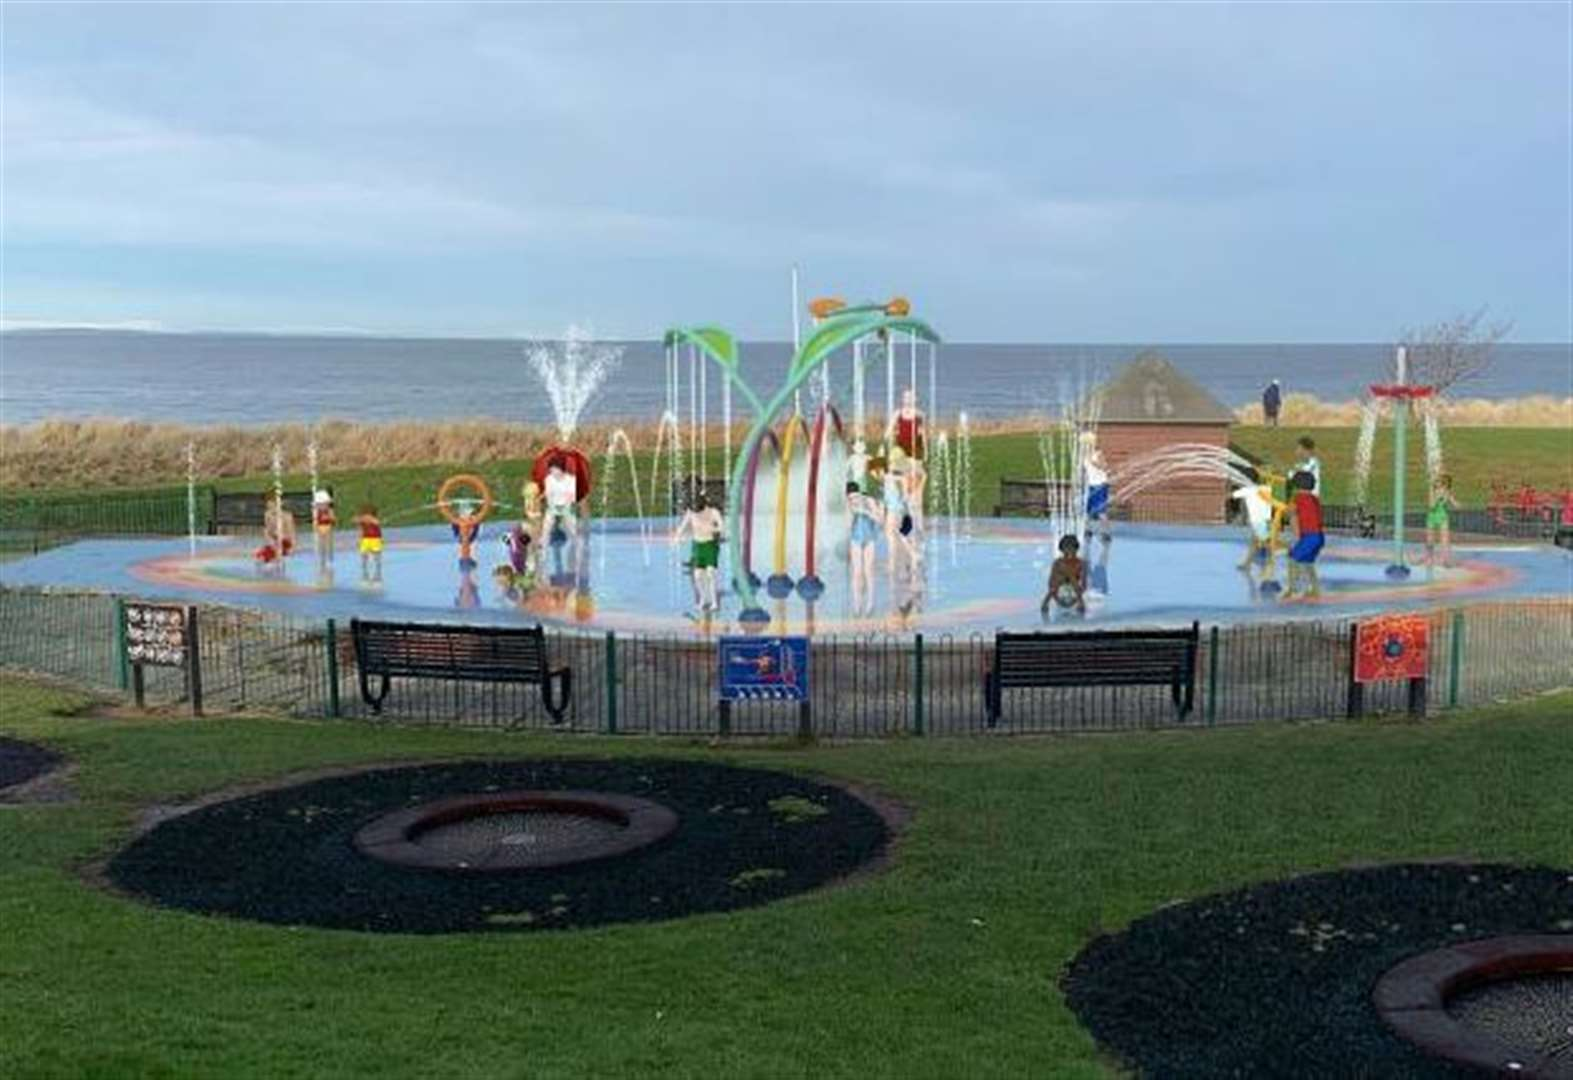 Work to provide a new splash pad for Nairn has been delayed